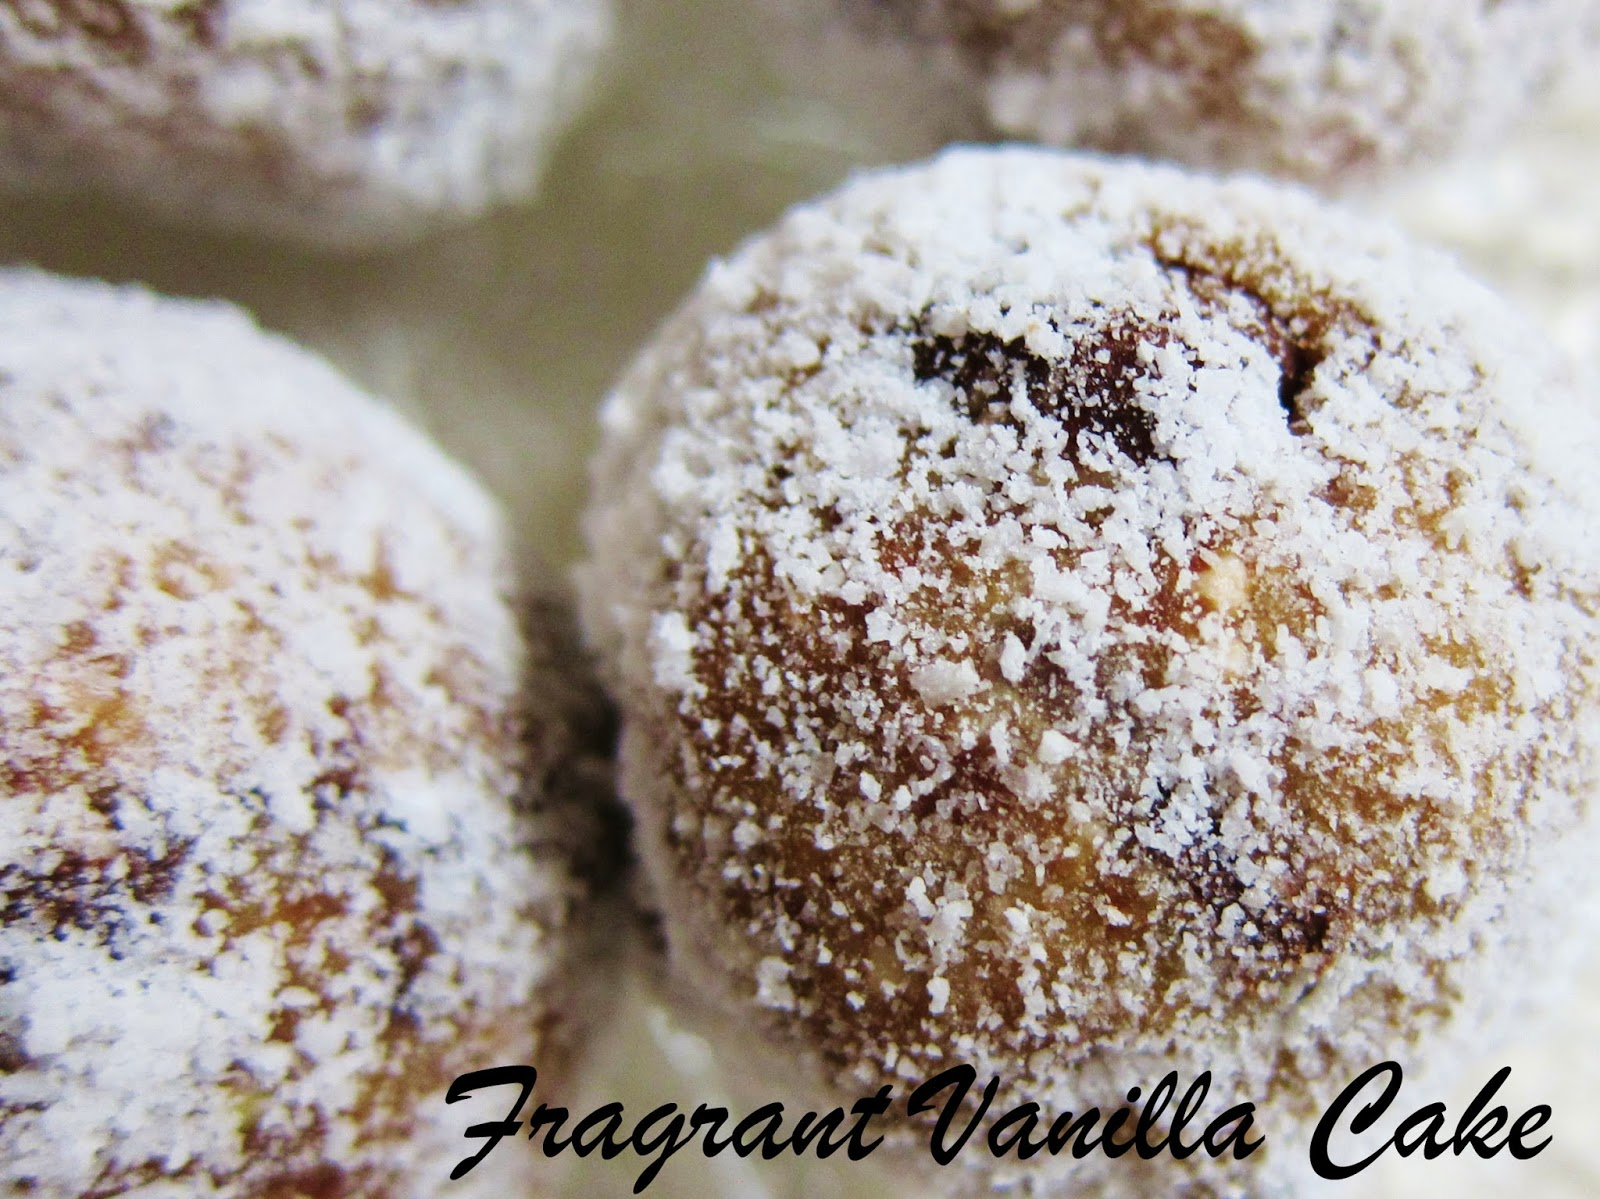 about doughnut holes that and remembering how delicious doughnut holes ...